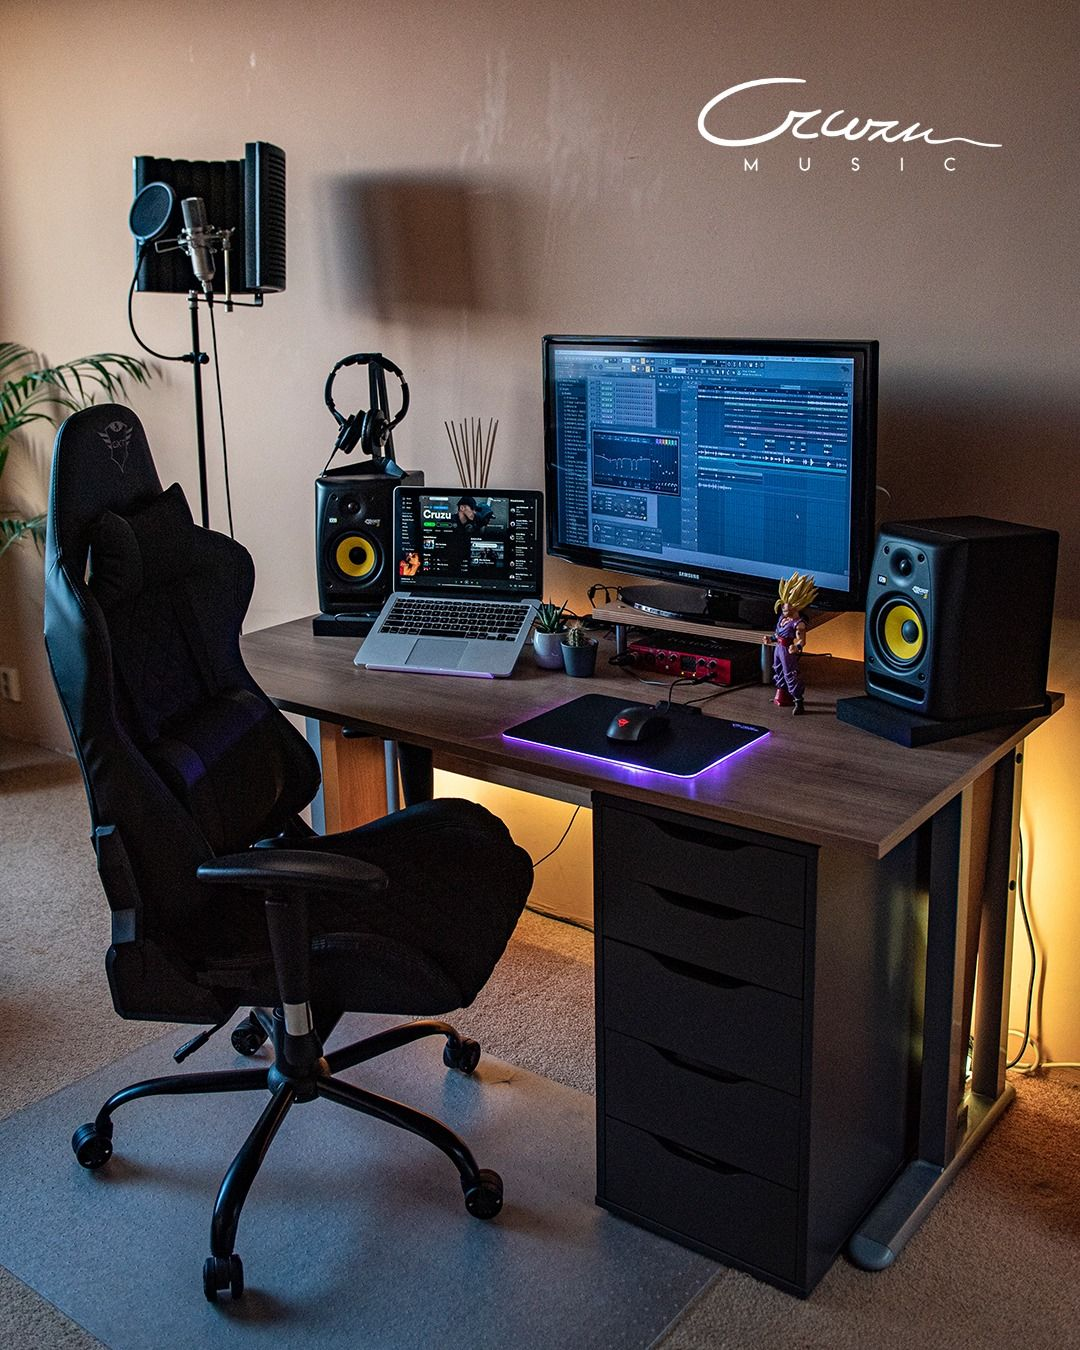 The home studio setup essentials Microphone with stand